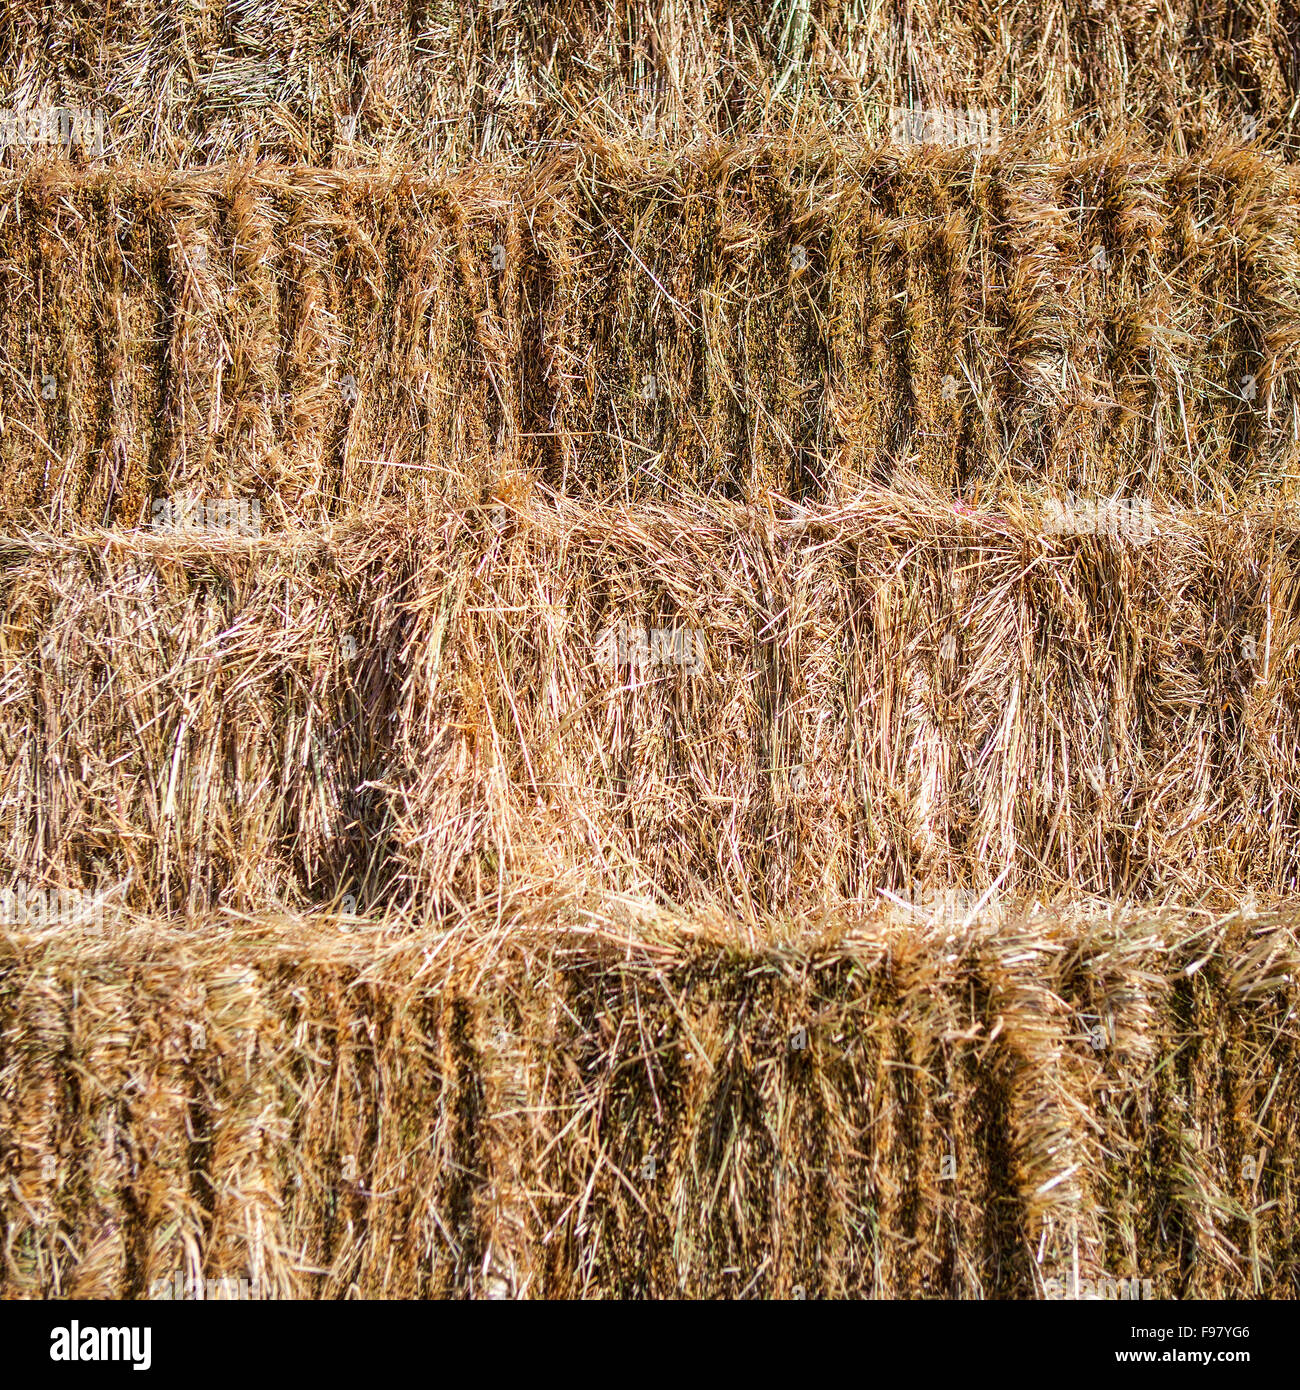 Fresh hay bales stacked for background - Stock Image